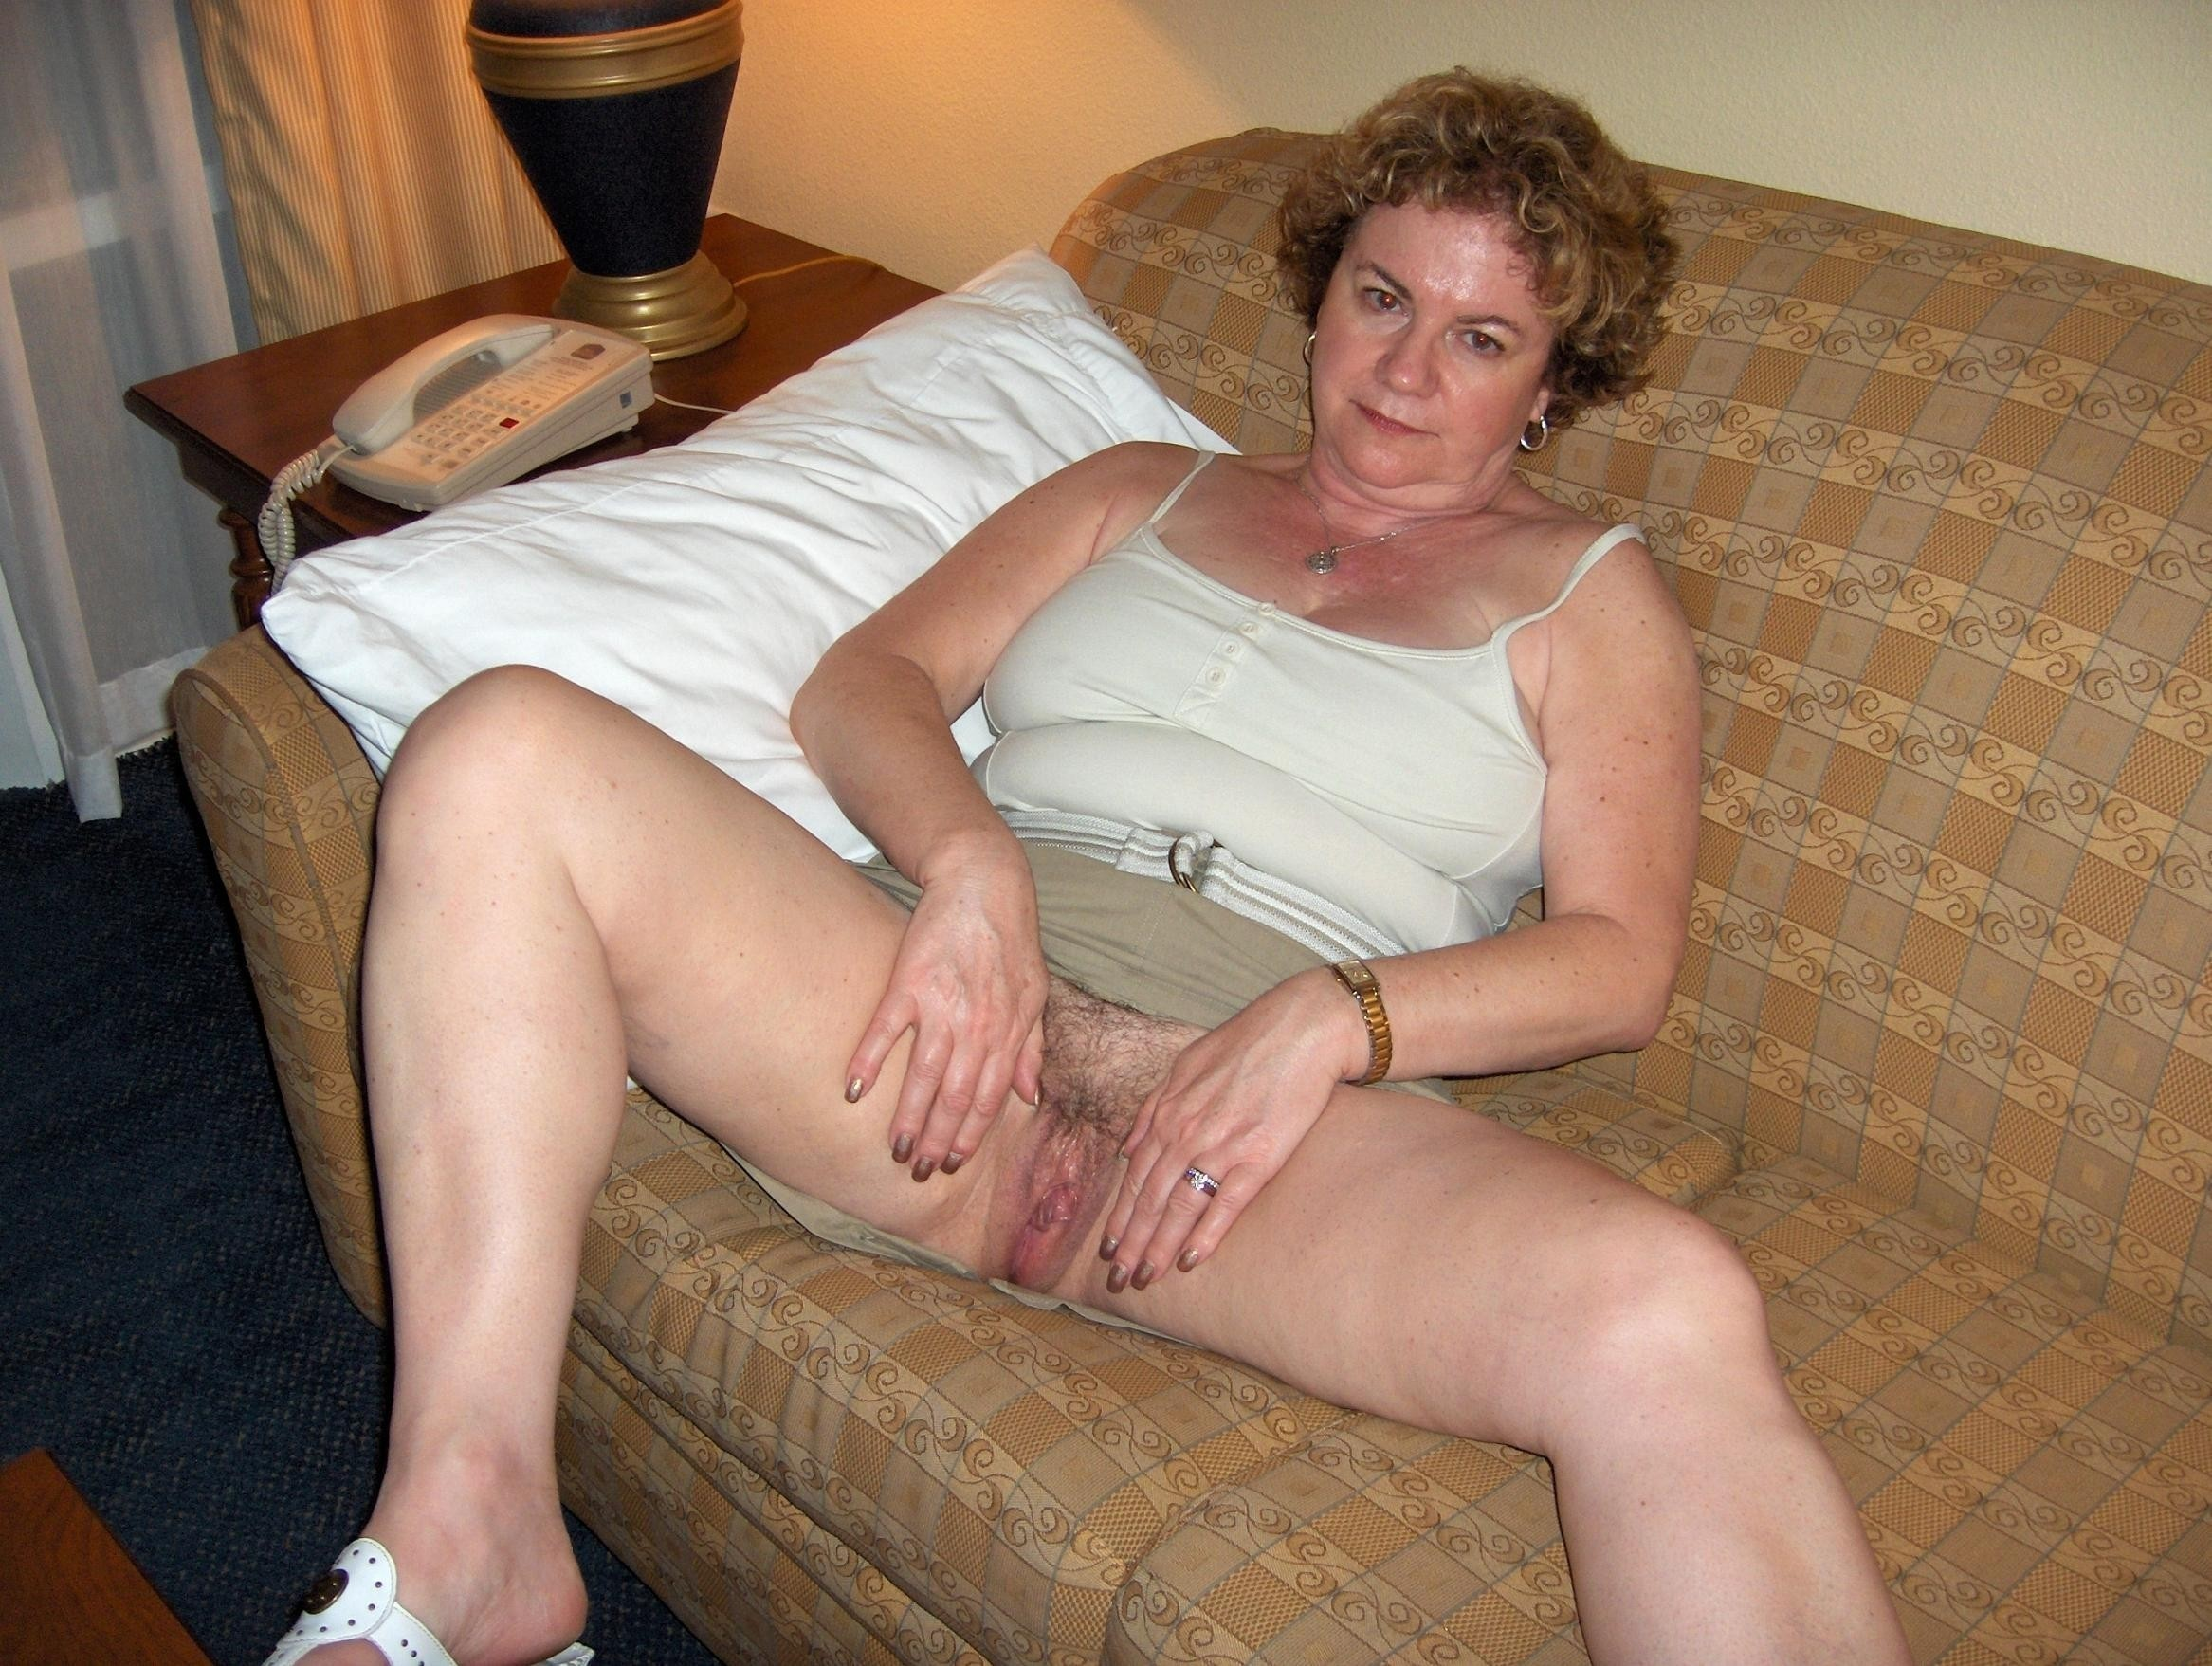 russian moms nude photo